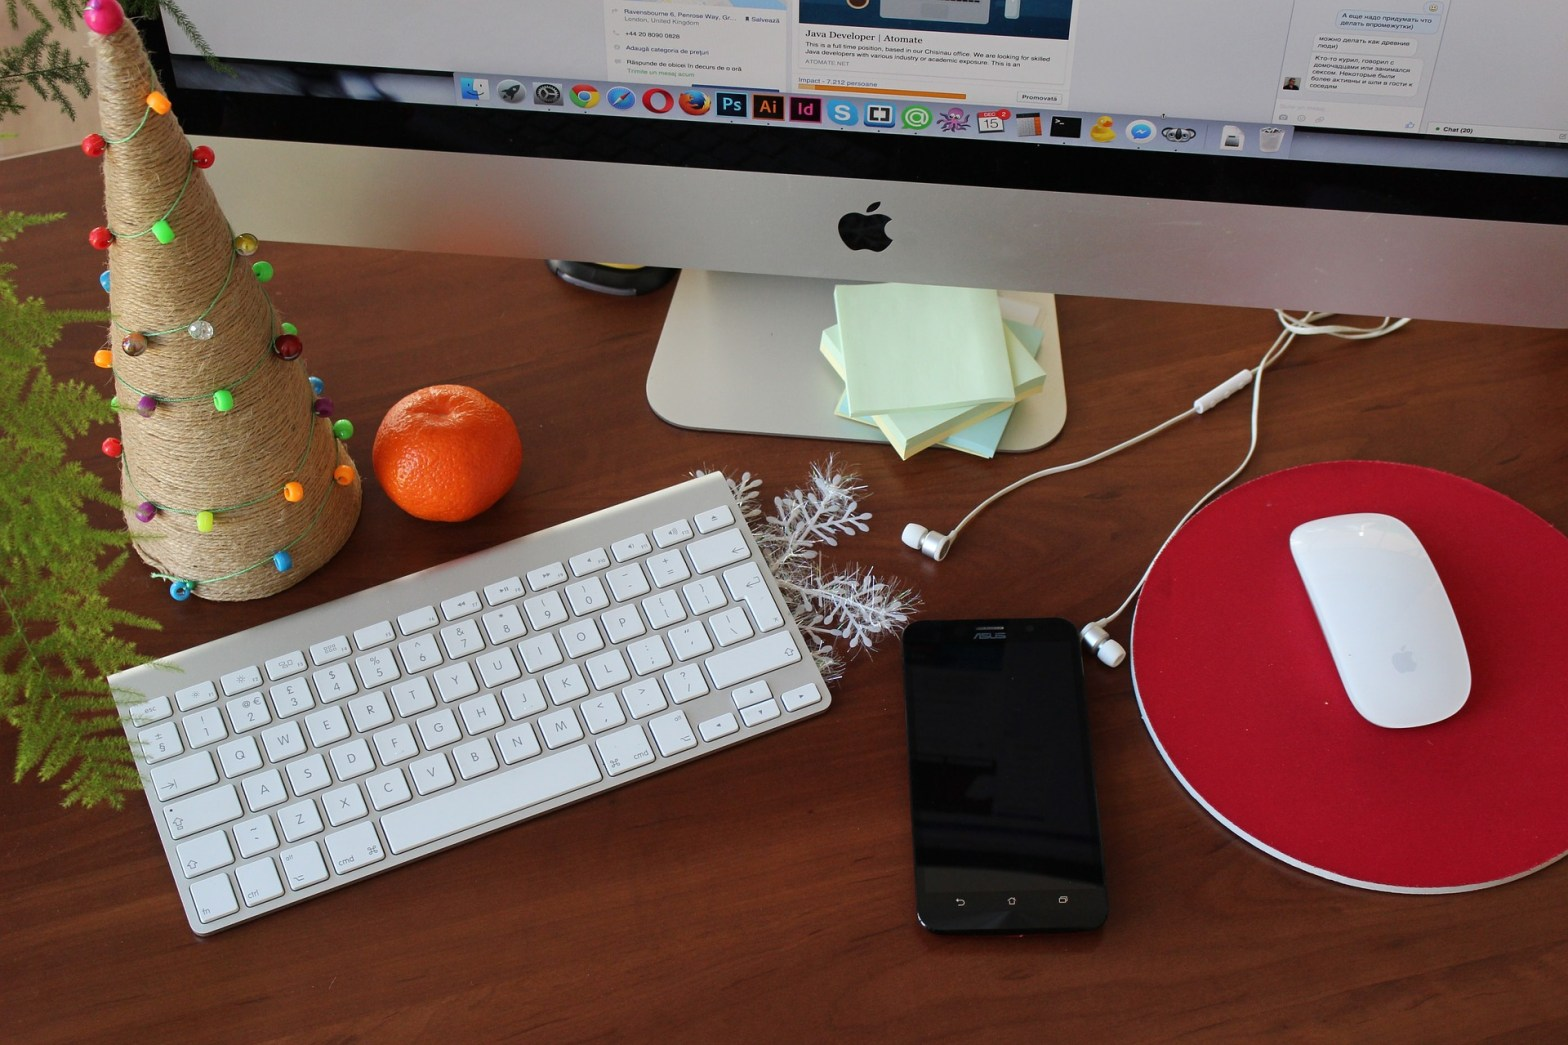 photo of a computer monitor, keyboard and mouse, surrounded by holiday decorations